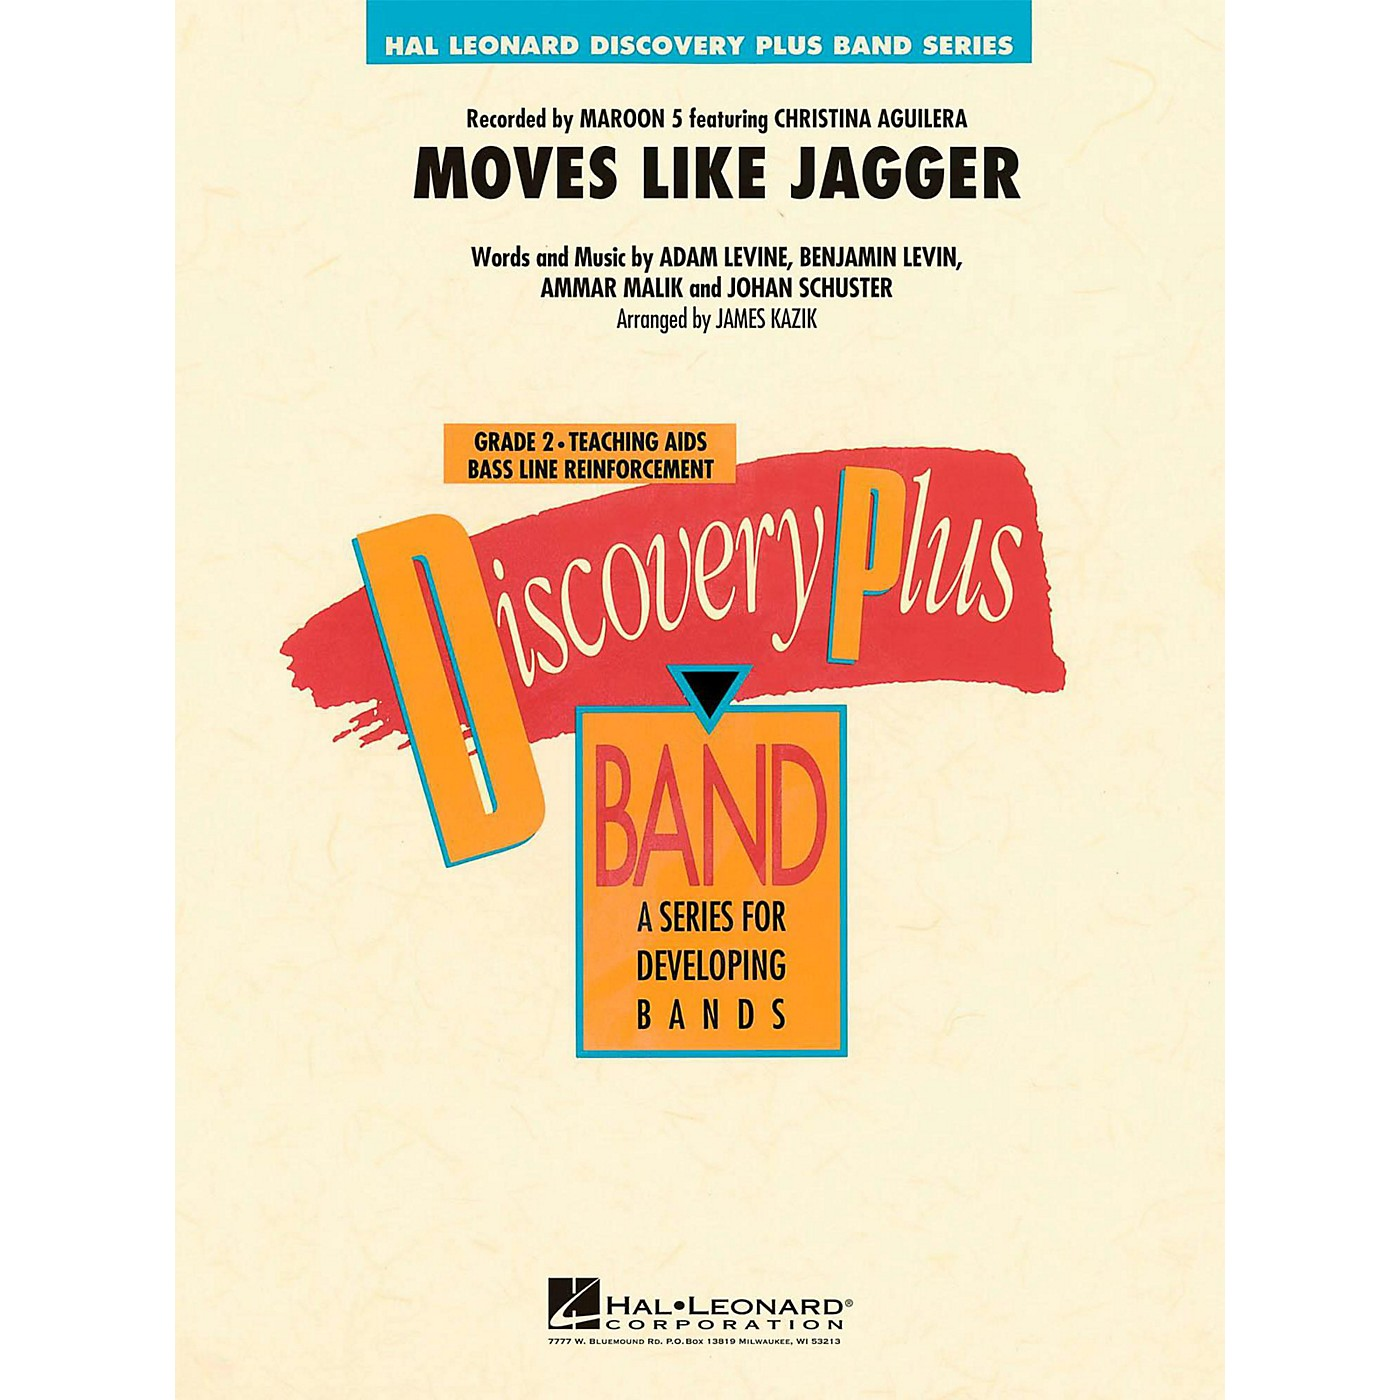 Hal Leonard Moves Like Jagger - Discovery Plus Concert Band Level 2 thumbnail